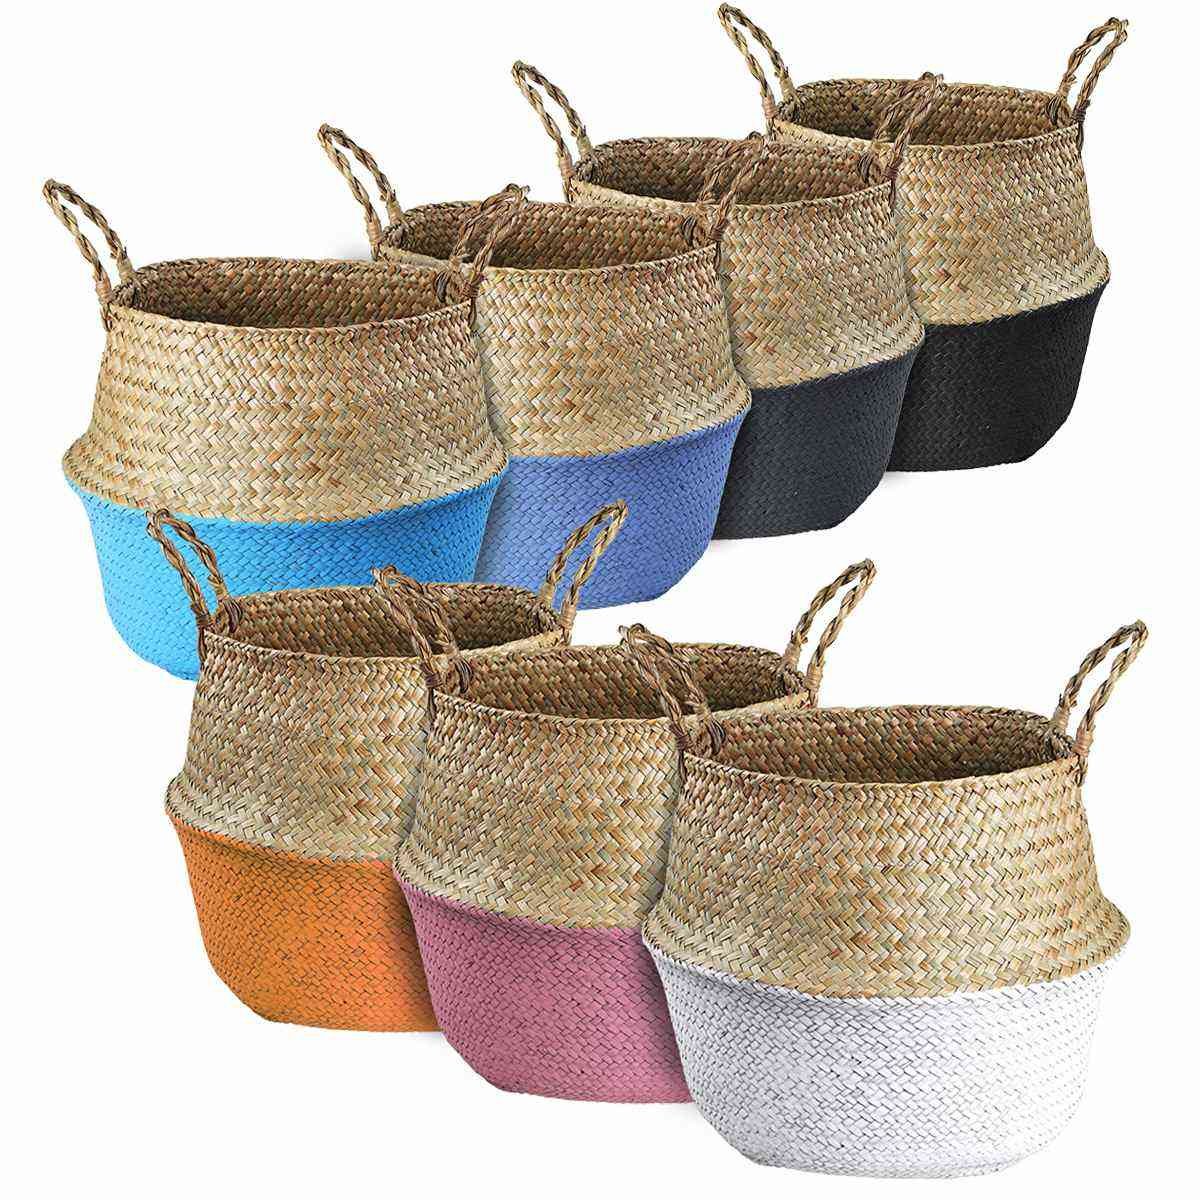 Storage Wicker Hanging Flower Pot Baskets For / Dirty Laundry